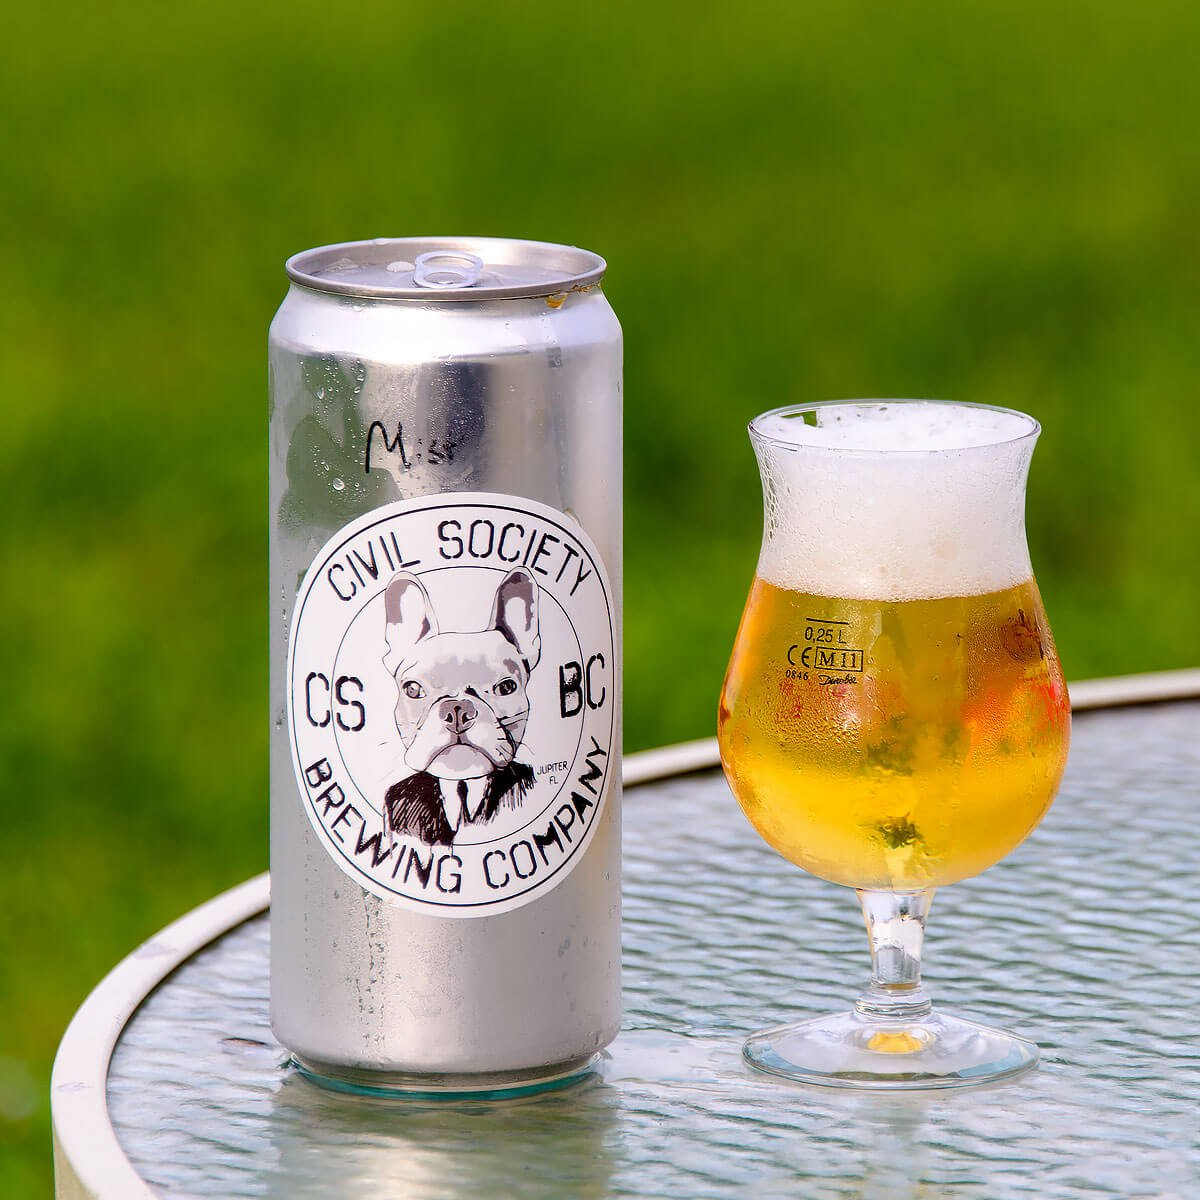 Mist, a Belgian-style Saison by Civil Society Brewing Co.